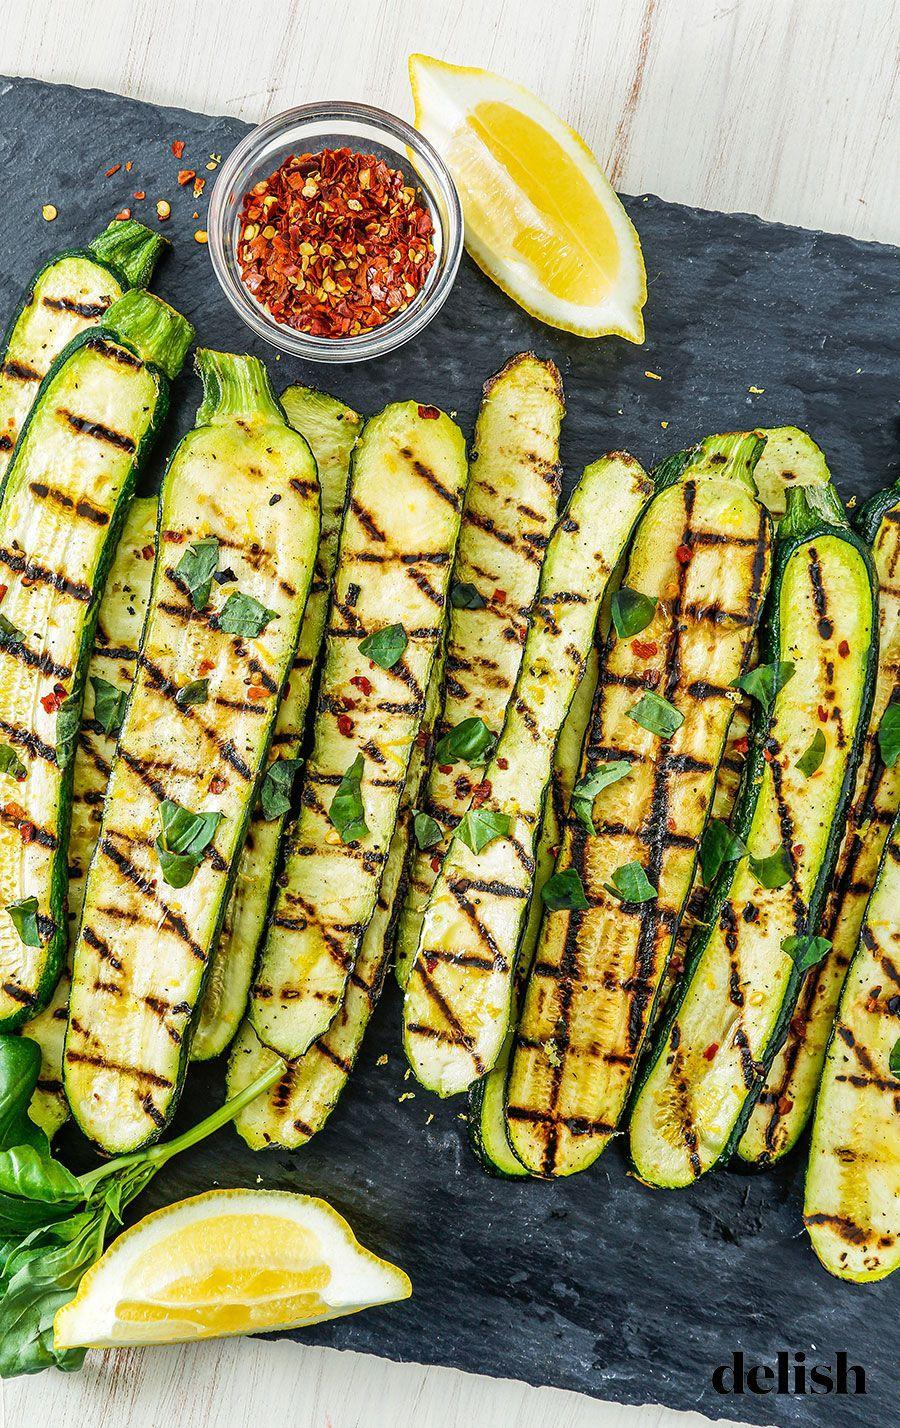 "<p>Here's your healthy, go-to summer side.</p><p>Get the recipe from <a href=""https://www.delish.com/cooking/recipe-ideas/recipes/a53484/grilled-zucchini-recipe/"" rel=""nofollow noopener"" target=""_blank"" data-ylk=""slk:Delish"" class=""link rapid-noclick-resp"">Delish</a>.</p>"